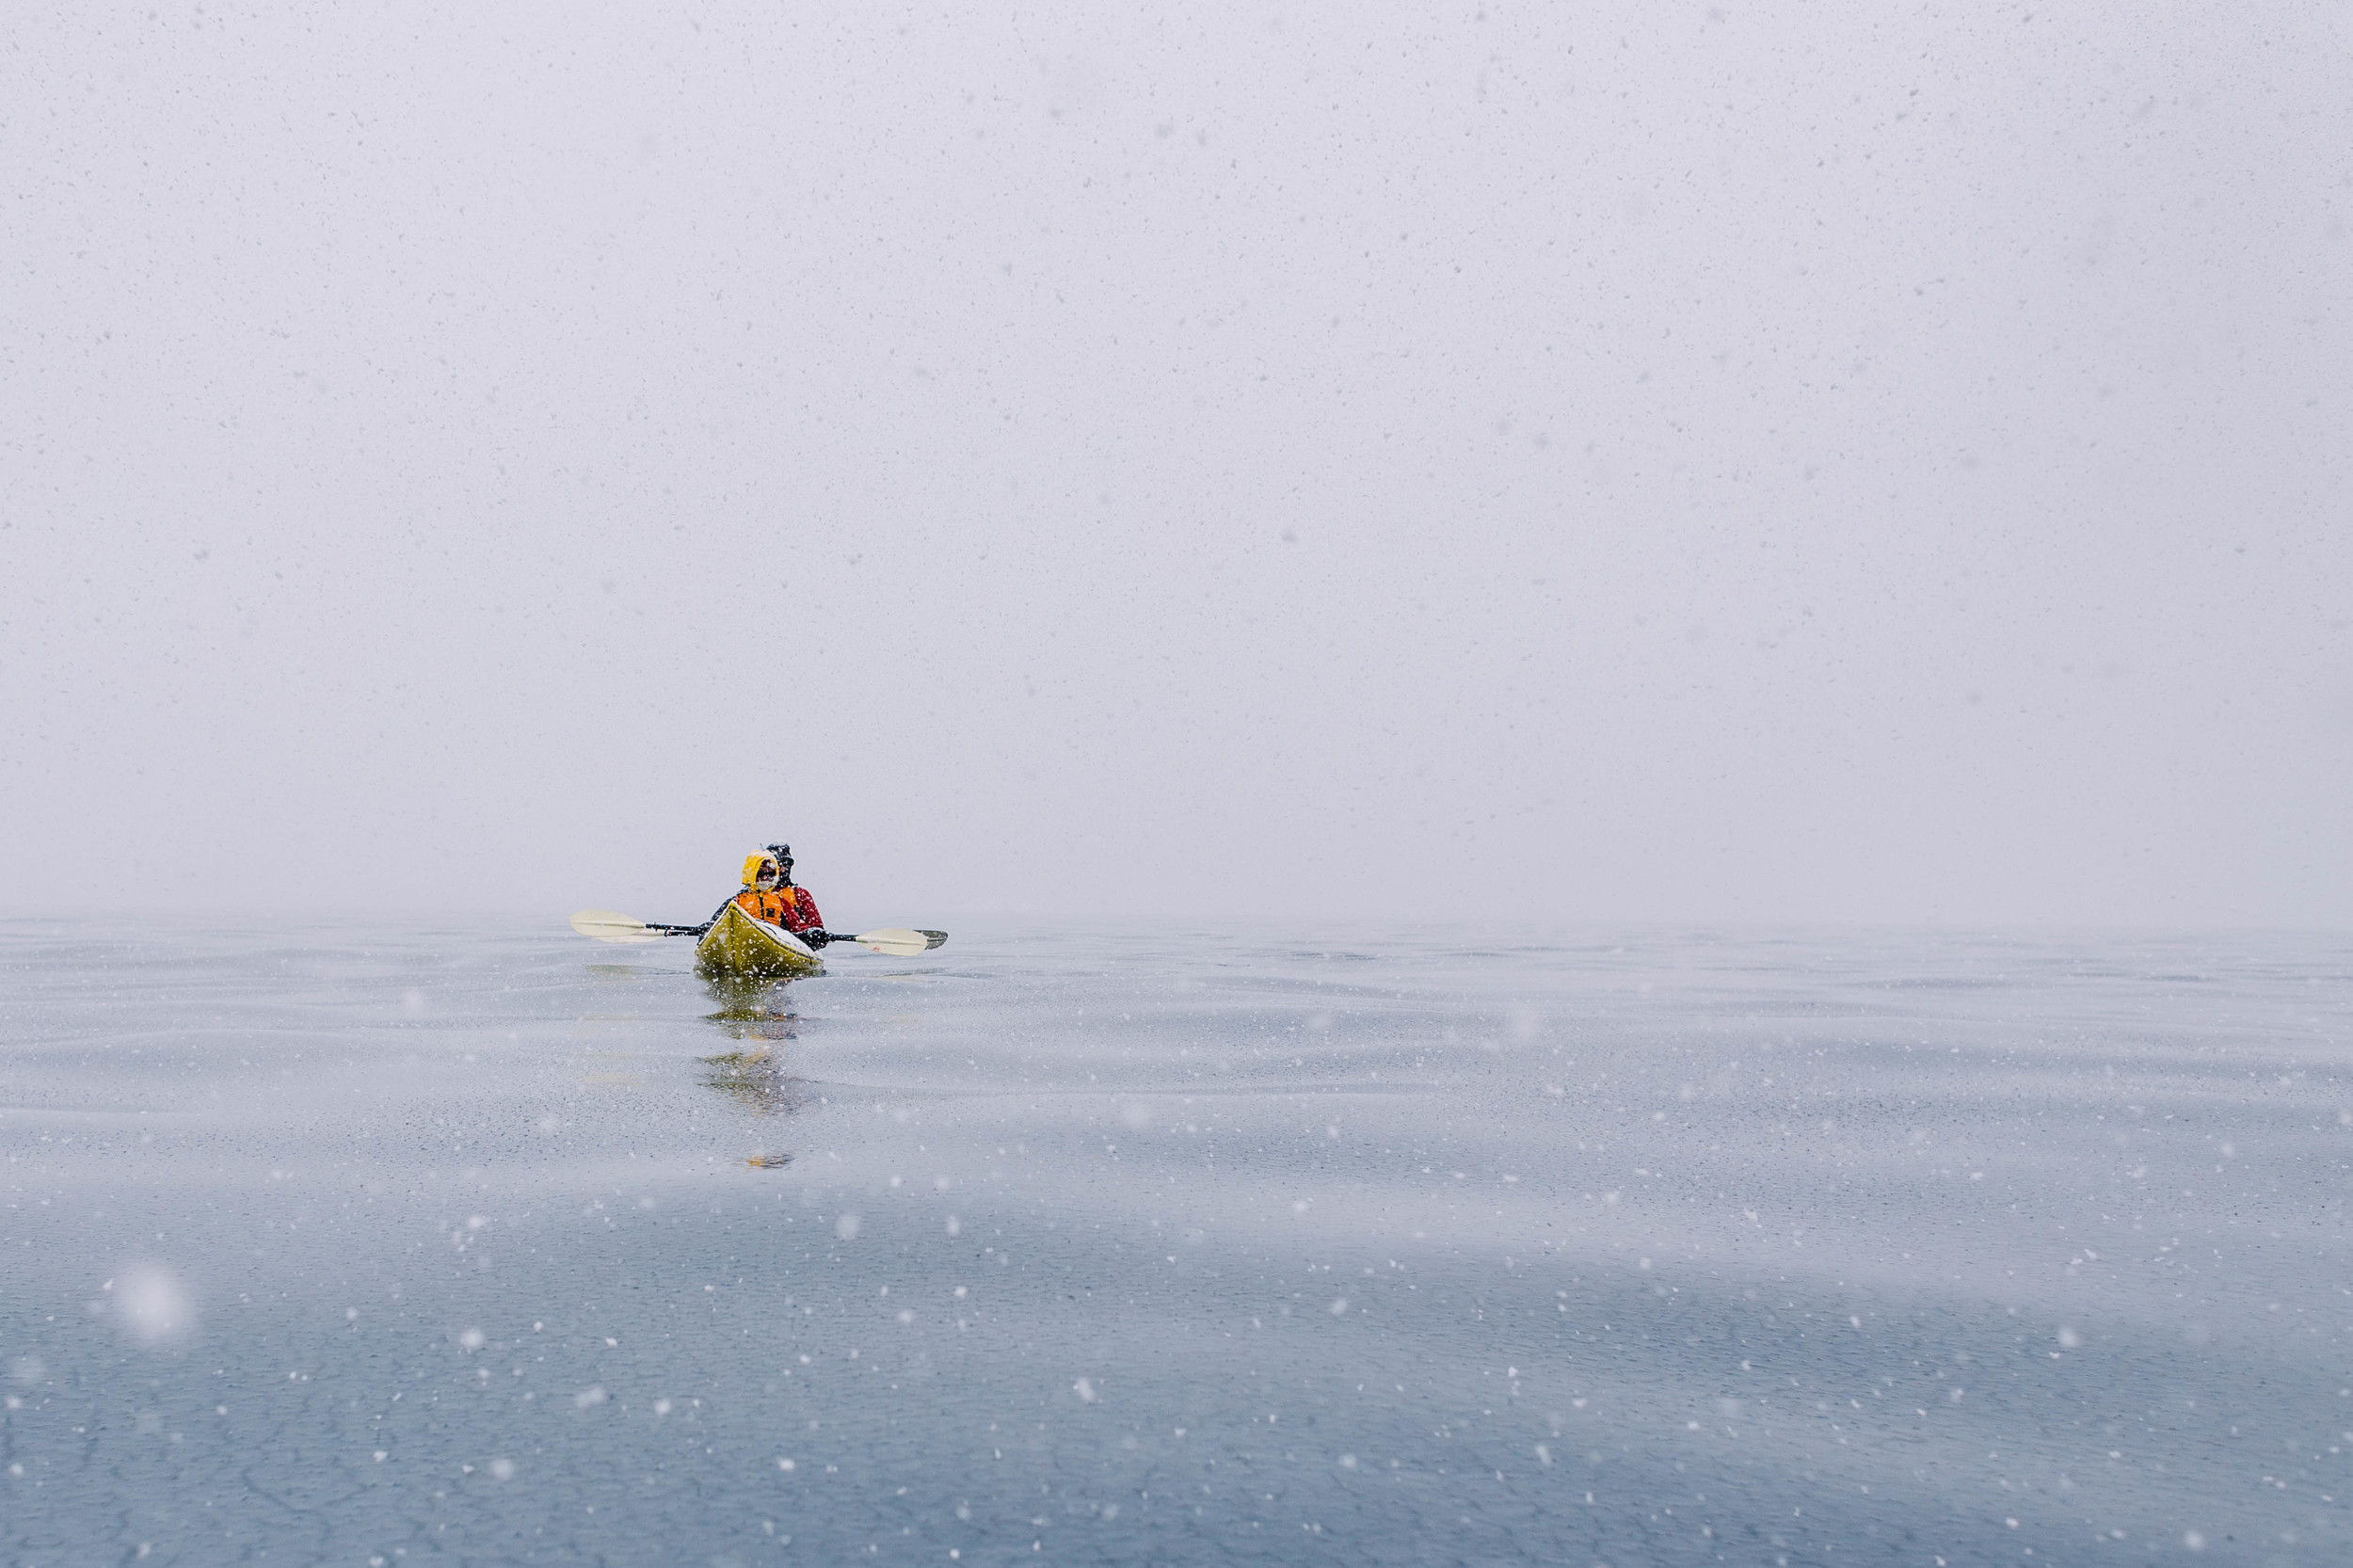 Marie and Nick peacefully await the rest of the kayakers as the snow falls beautifully around them. Salvesen Cove, Antarctica.